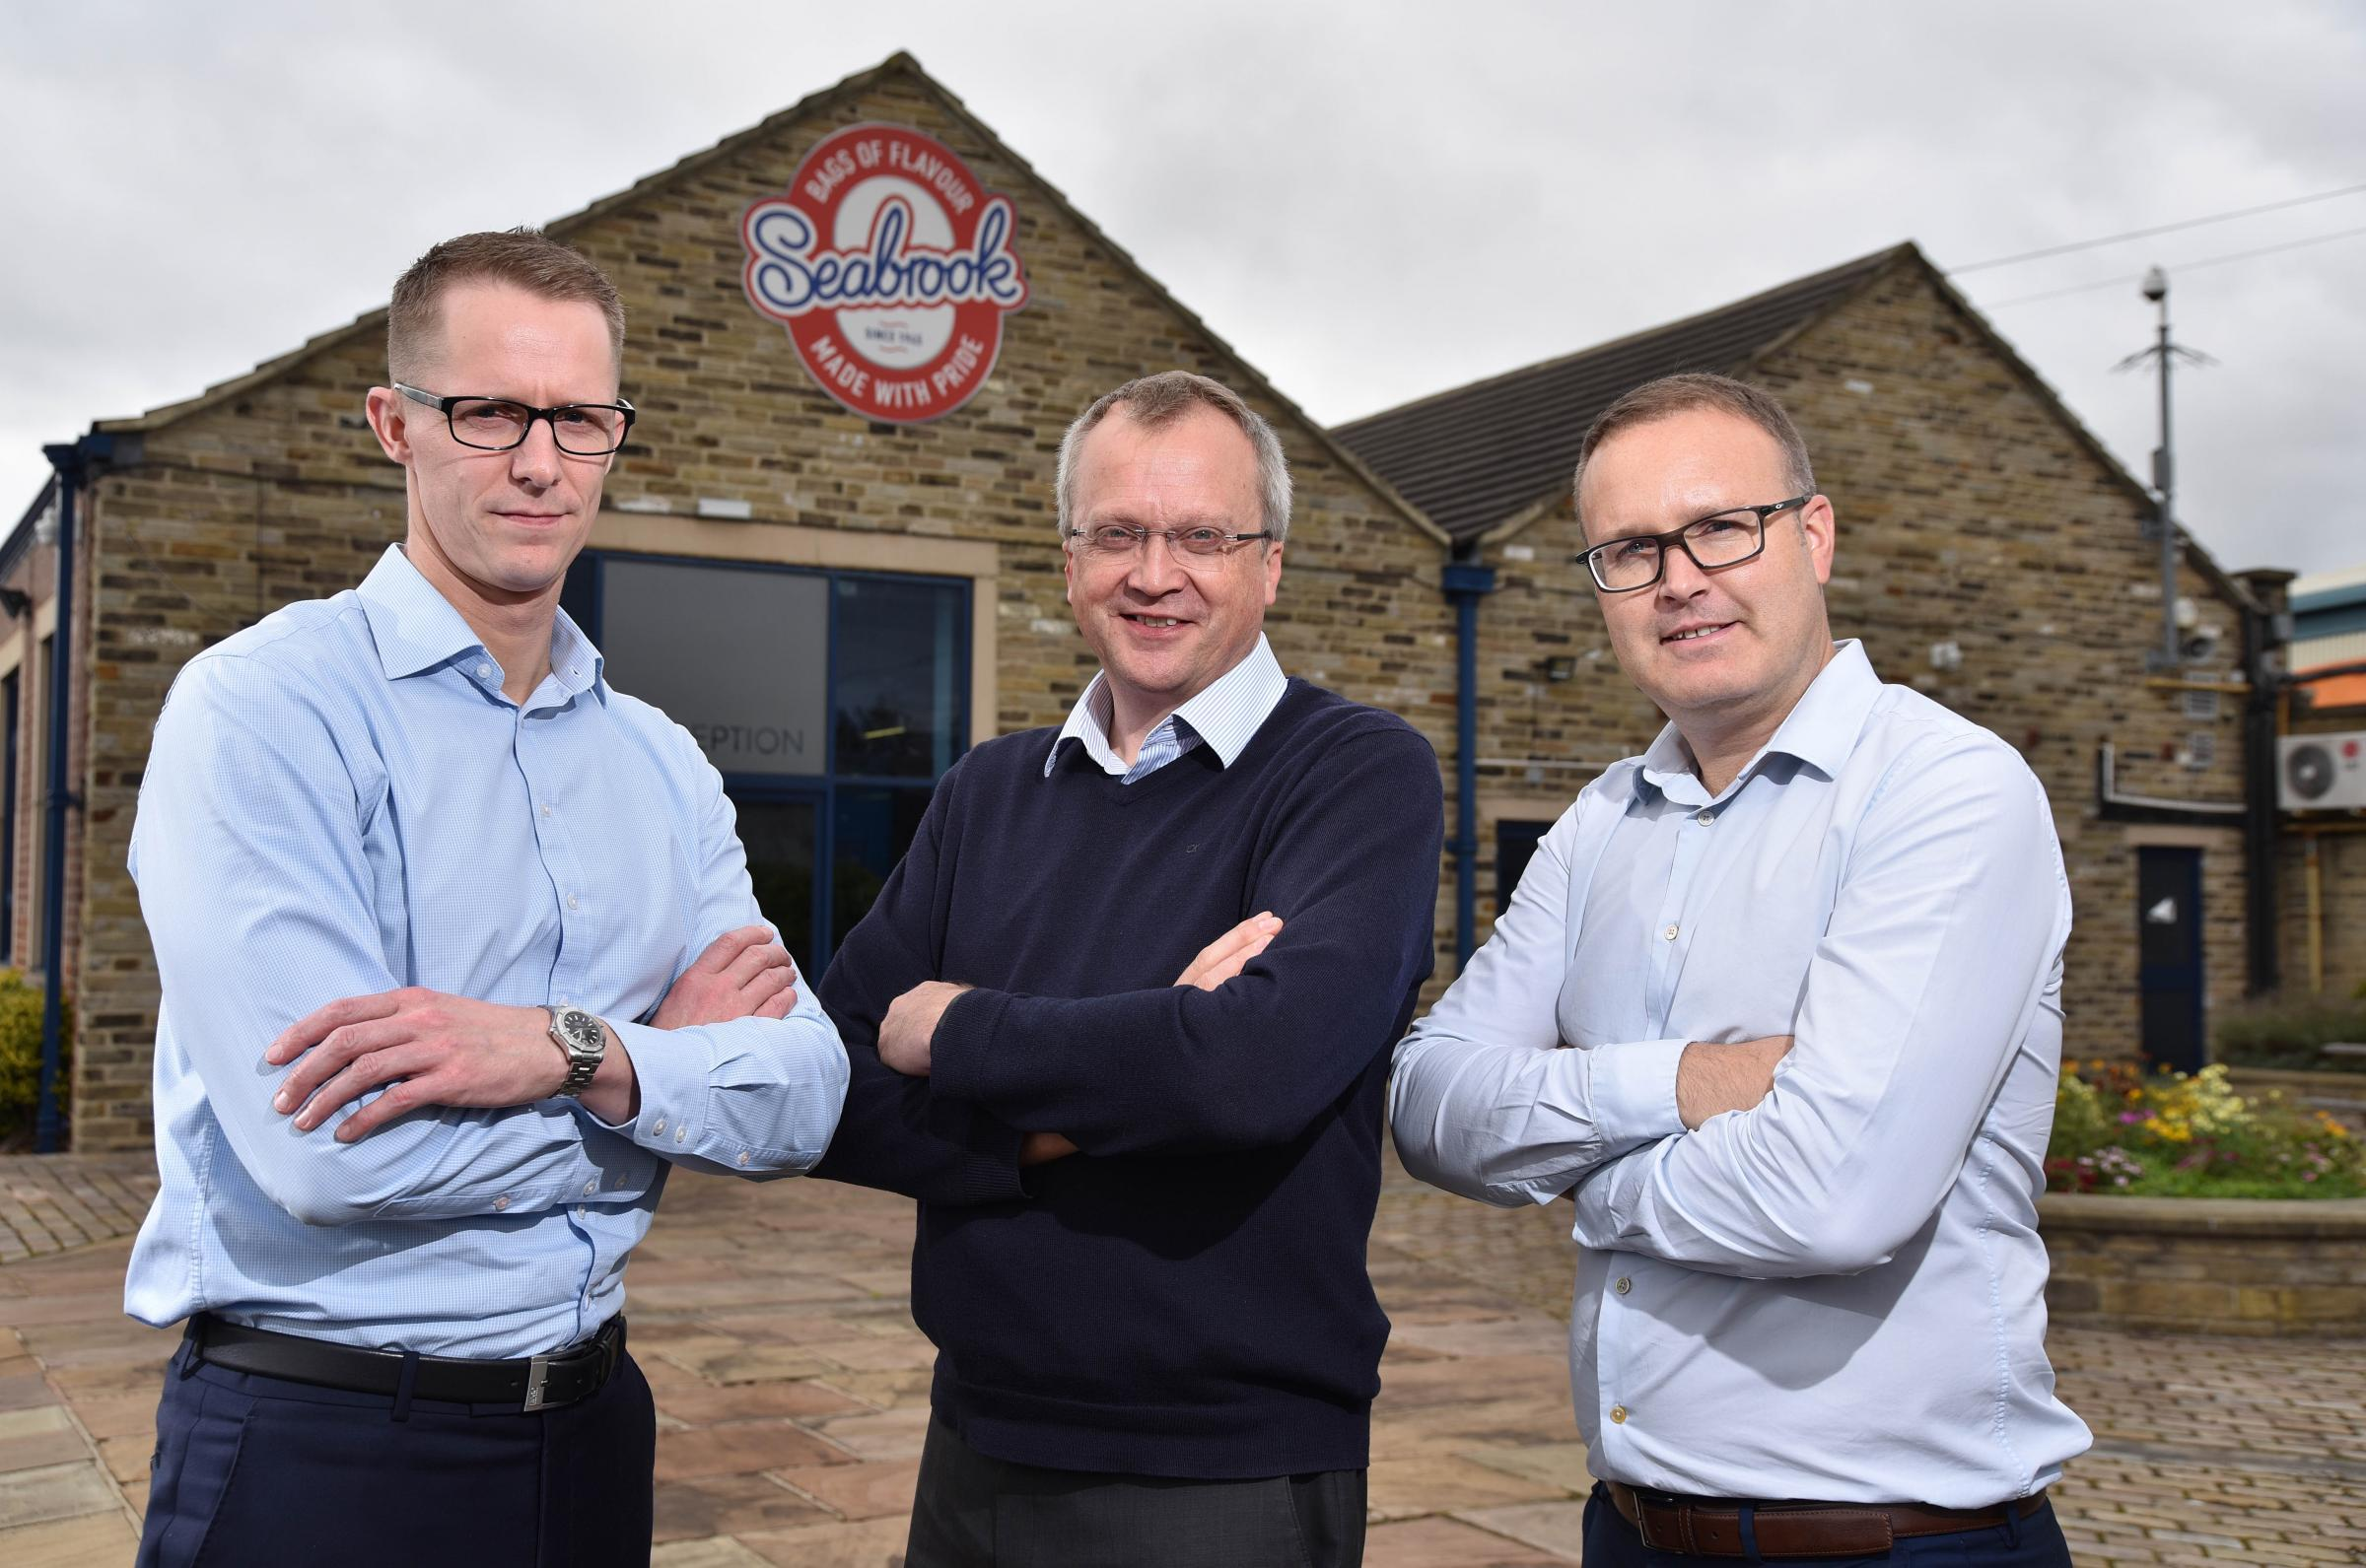 Seabrook Crisps bosses, including chief executive Jonathan Bye (middle)